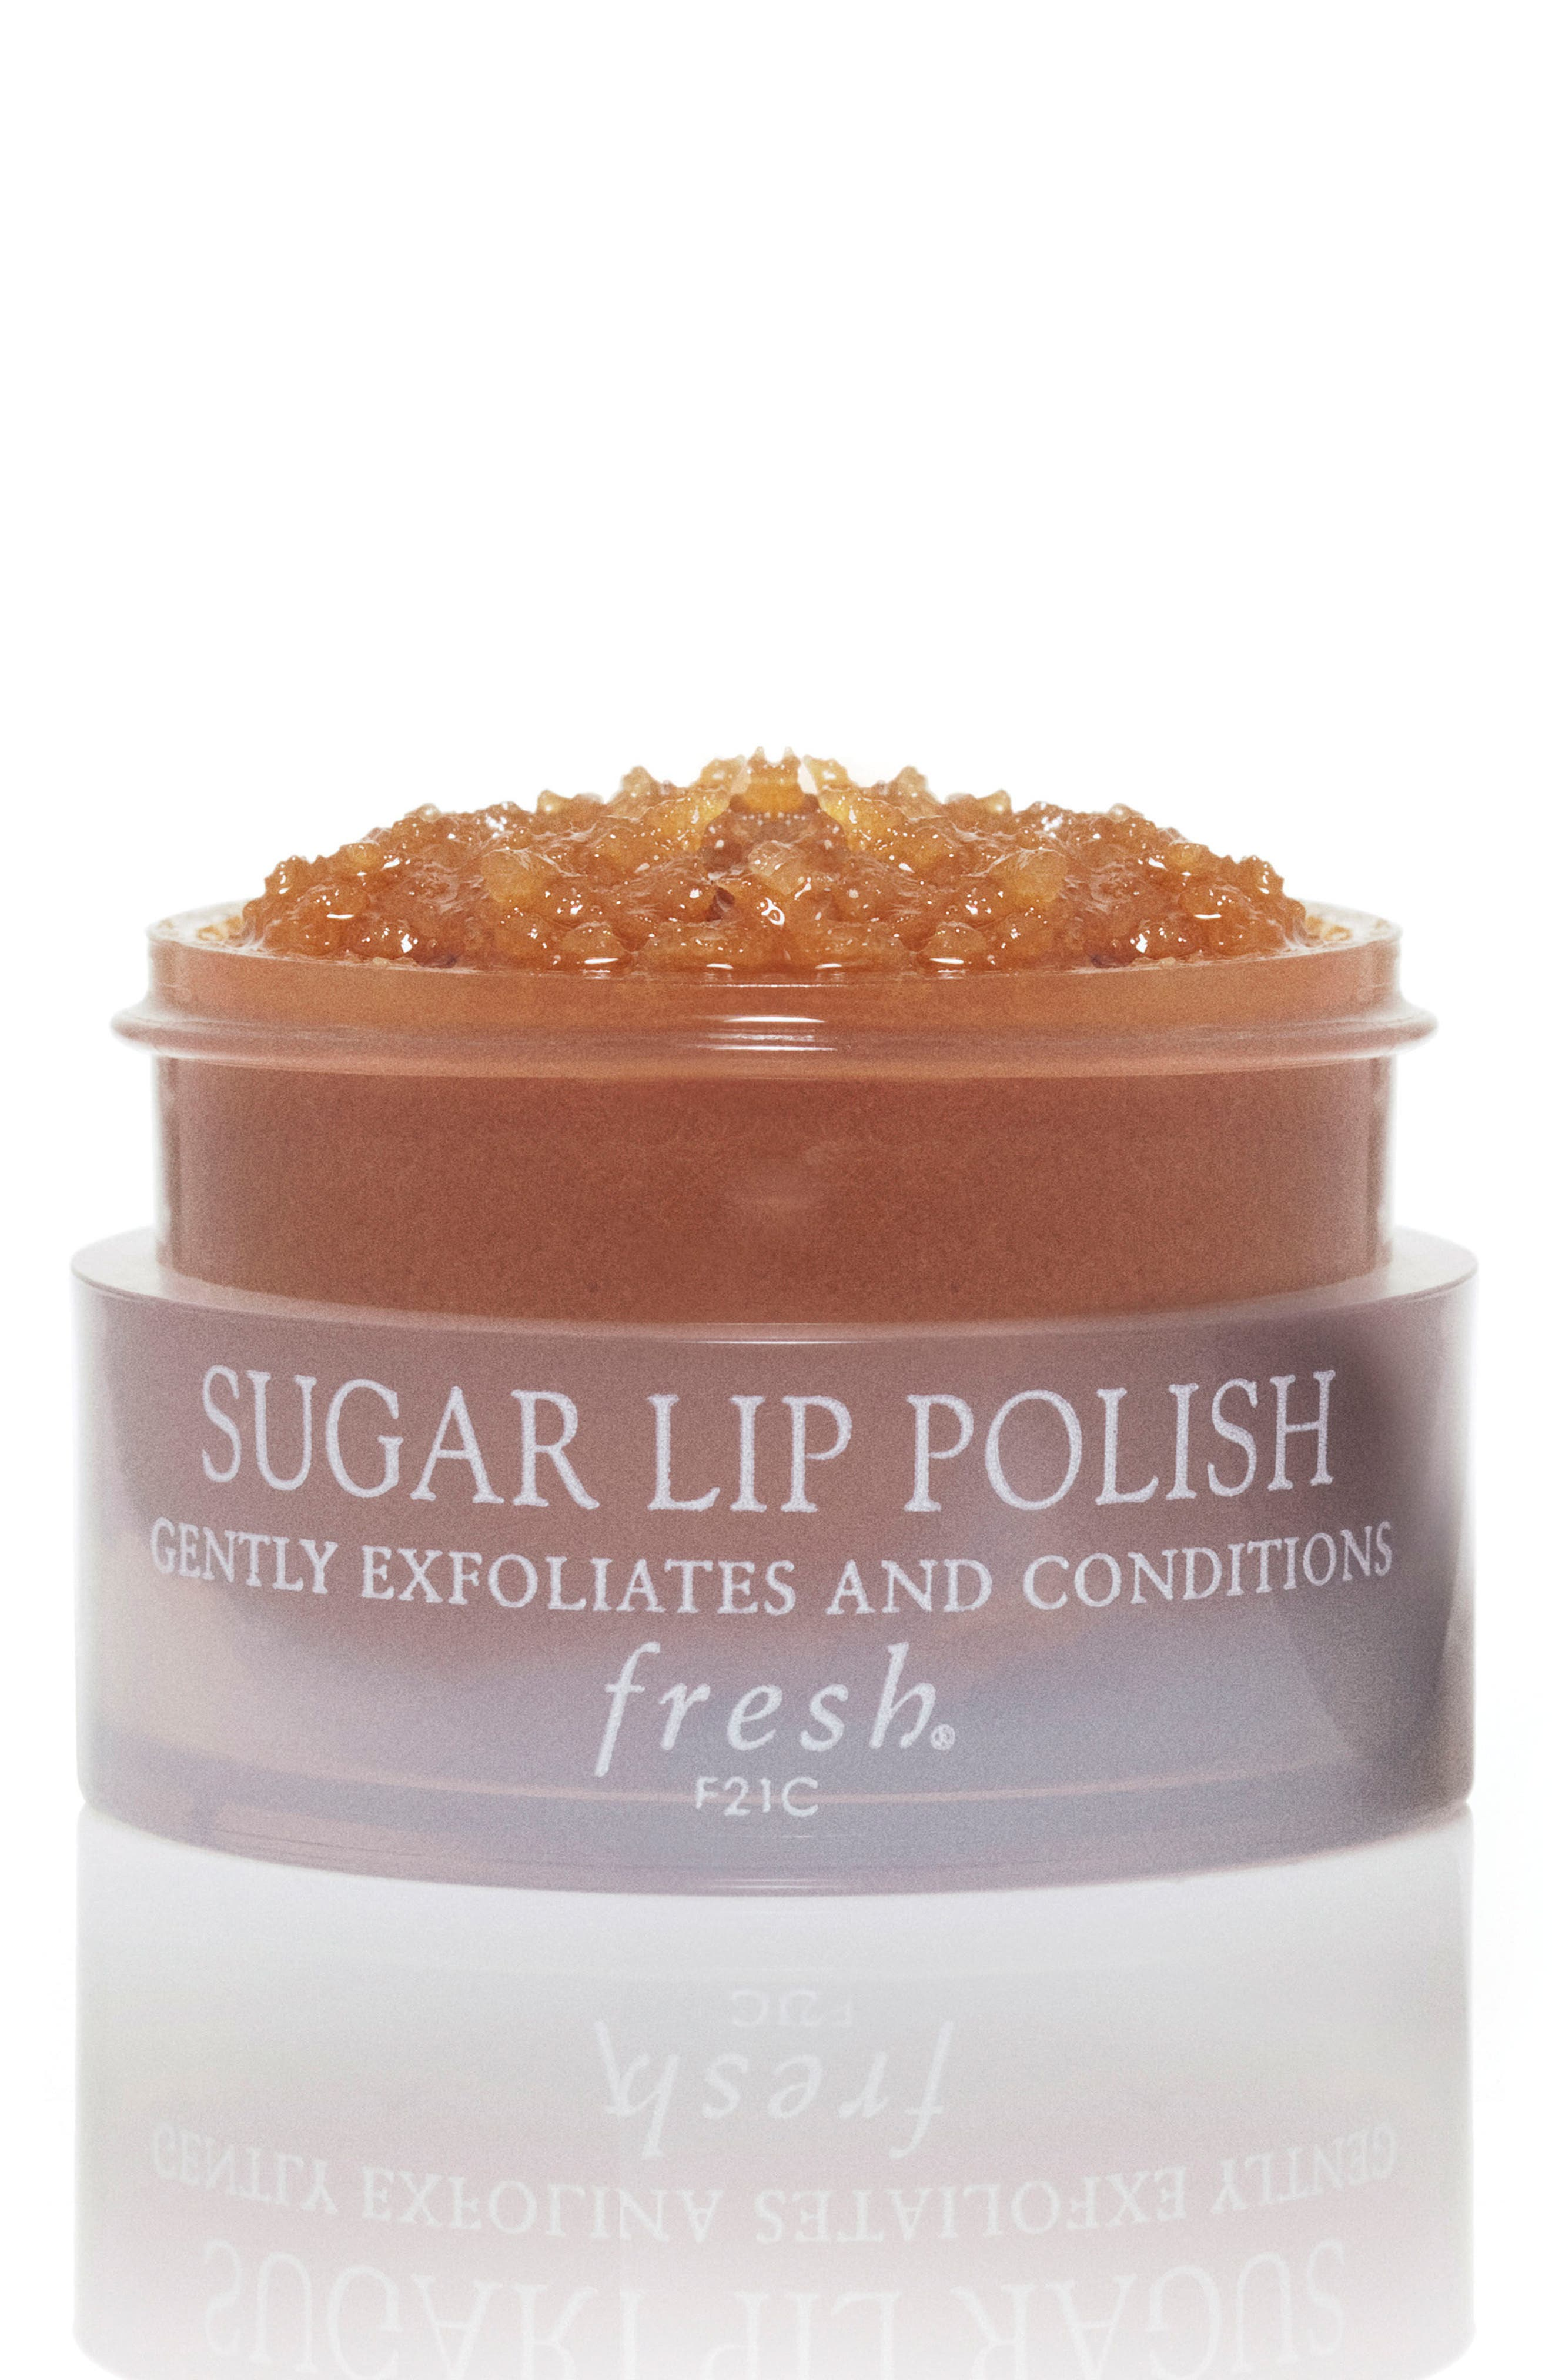 Fresh® Sugar Lip Polish